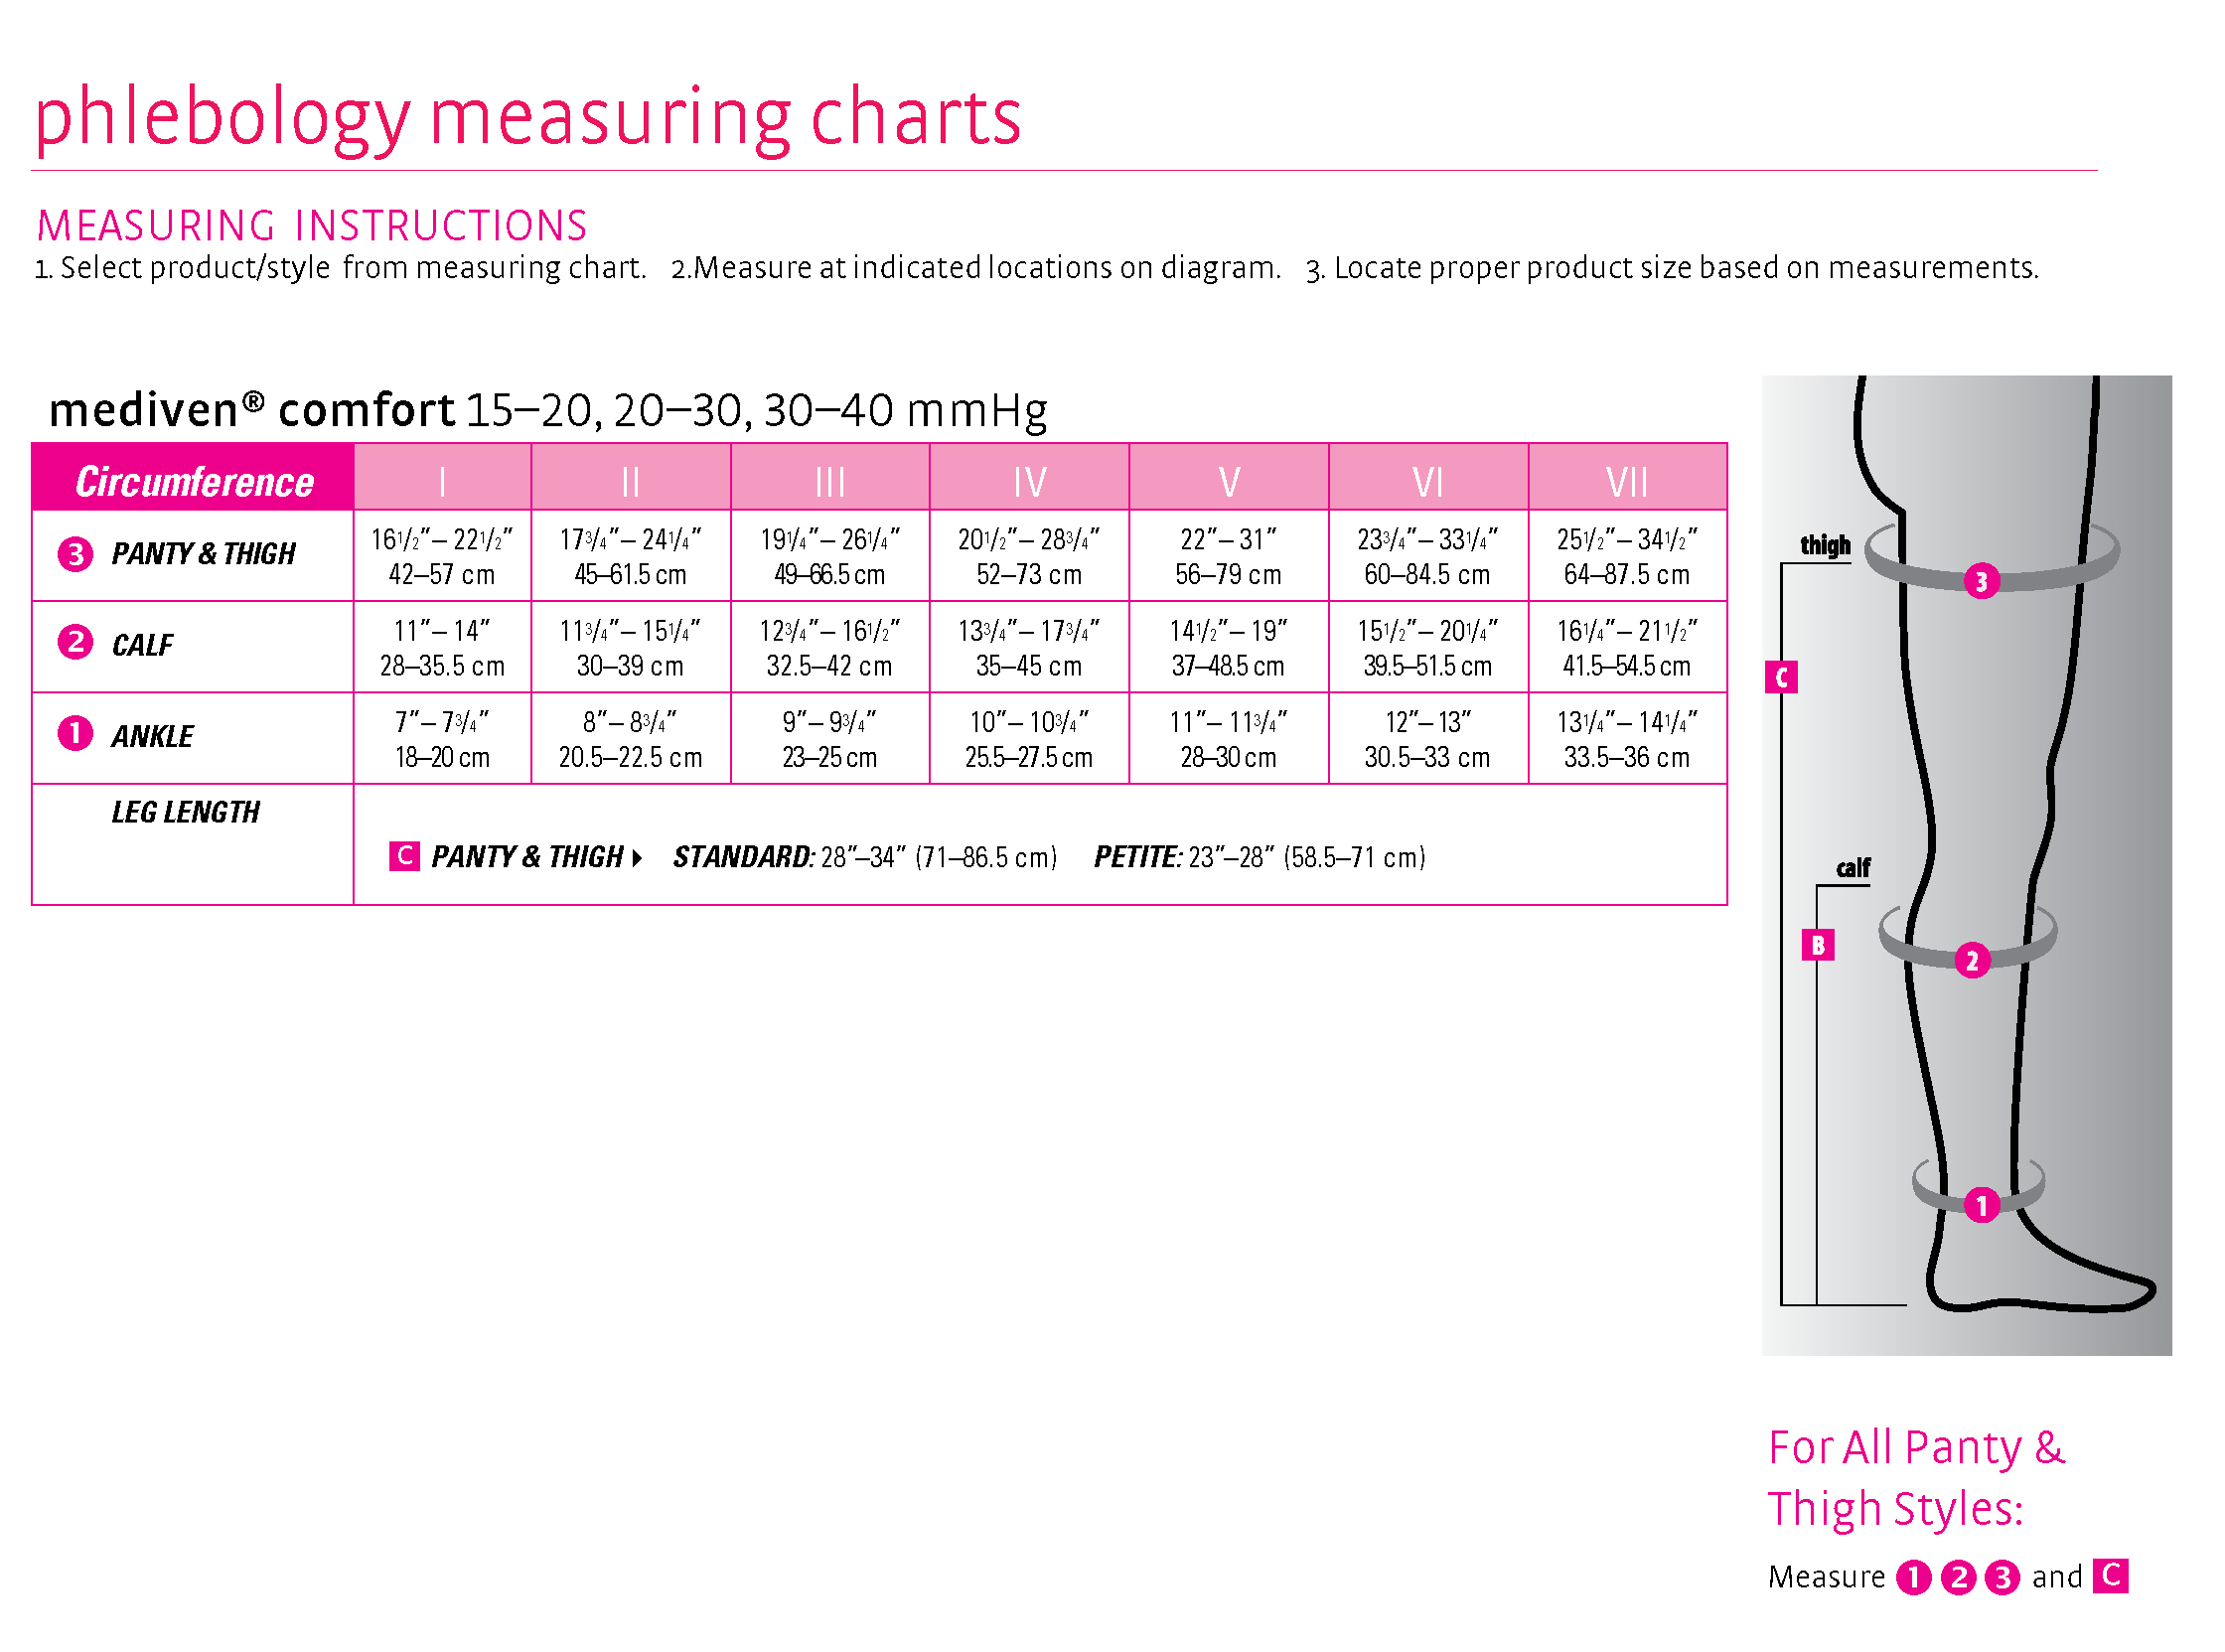 cb8c2eeb8ef66 For All Panty & Thigh Styles: Measure 1, 2, 3 and C. Videos: Mediven  Comfort 20-30 mmHg Open Toe Pantyhose